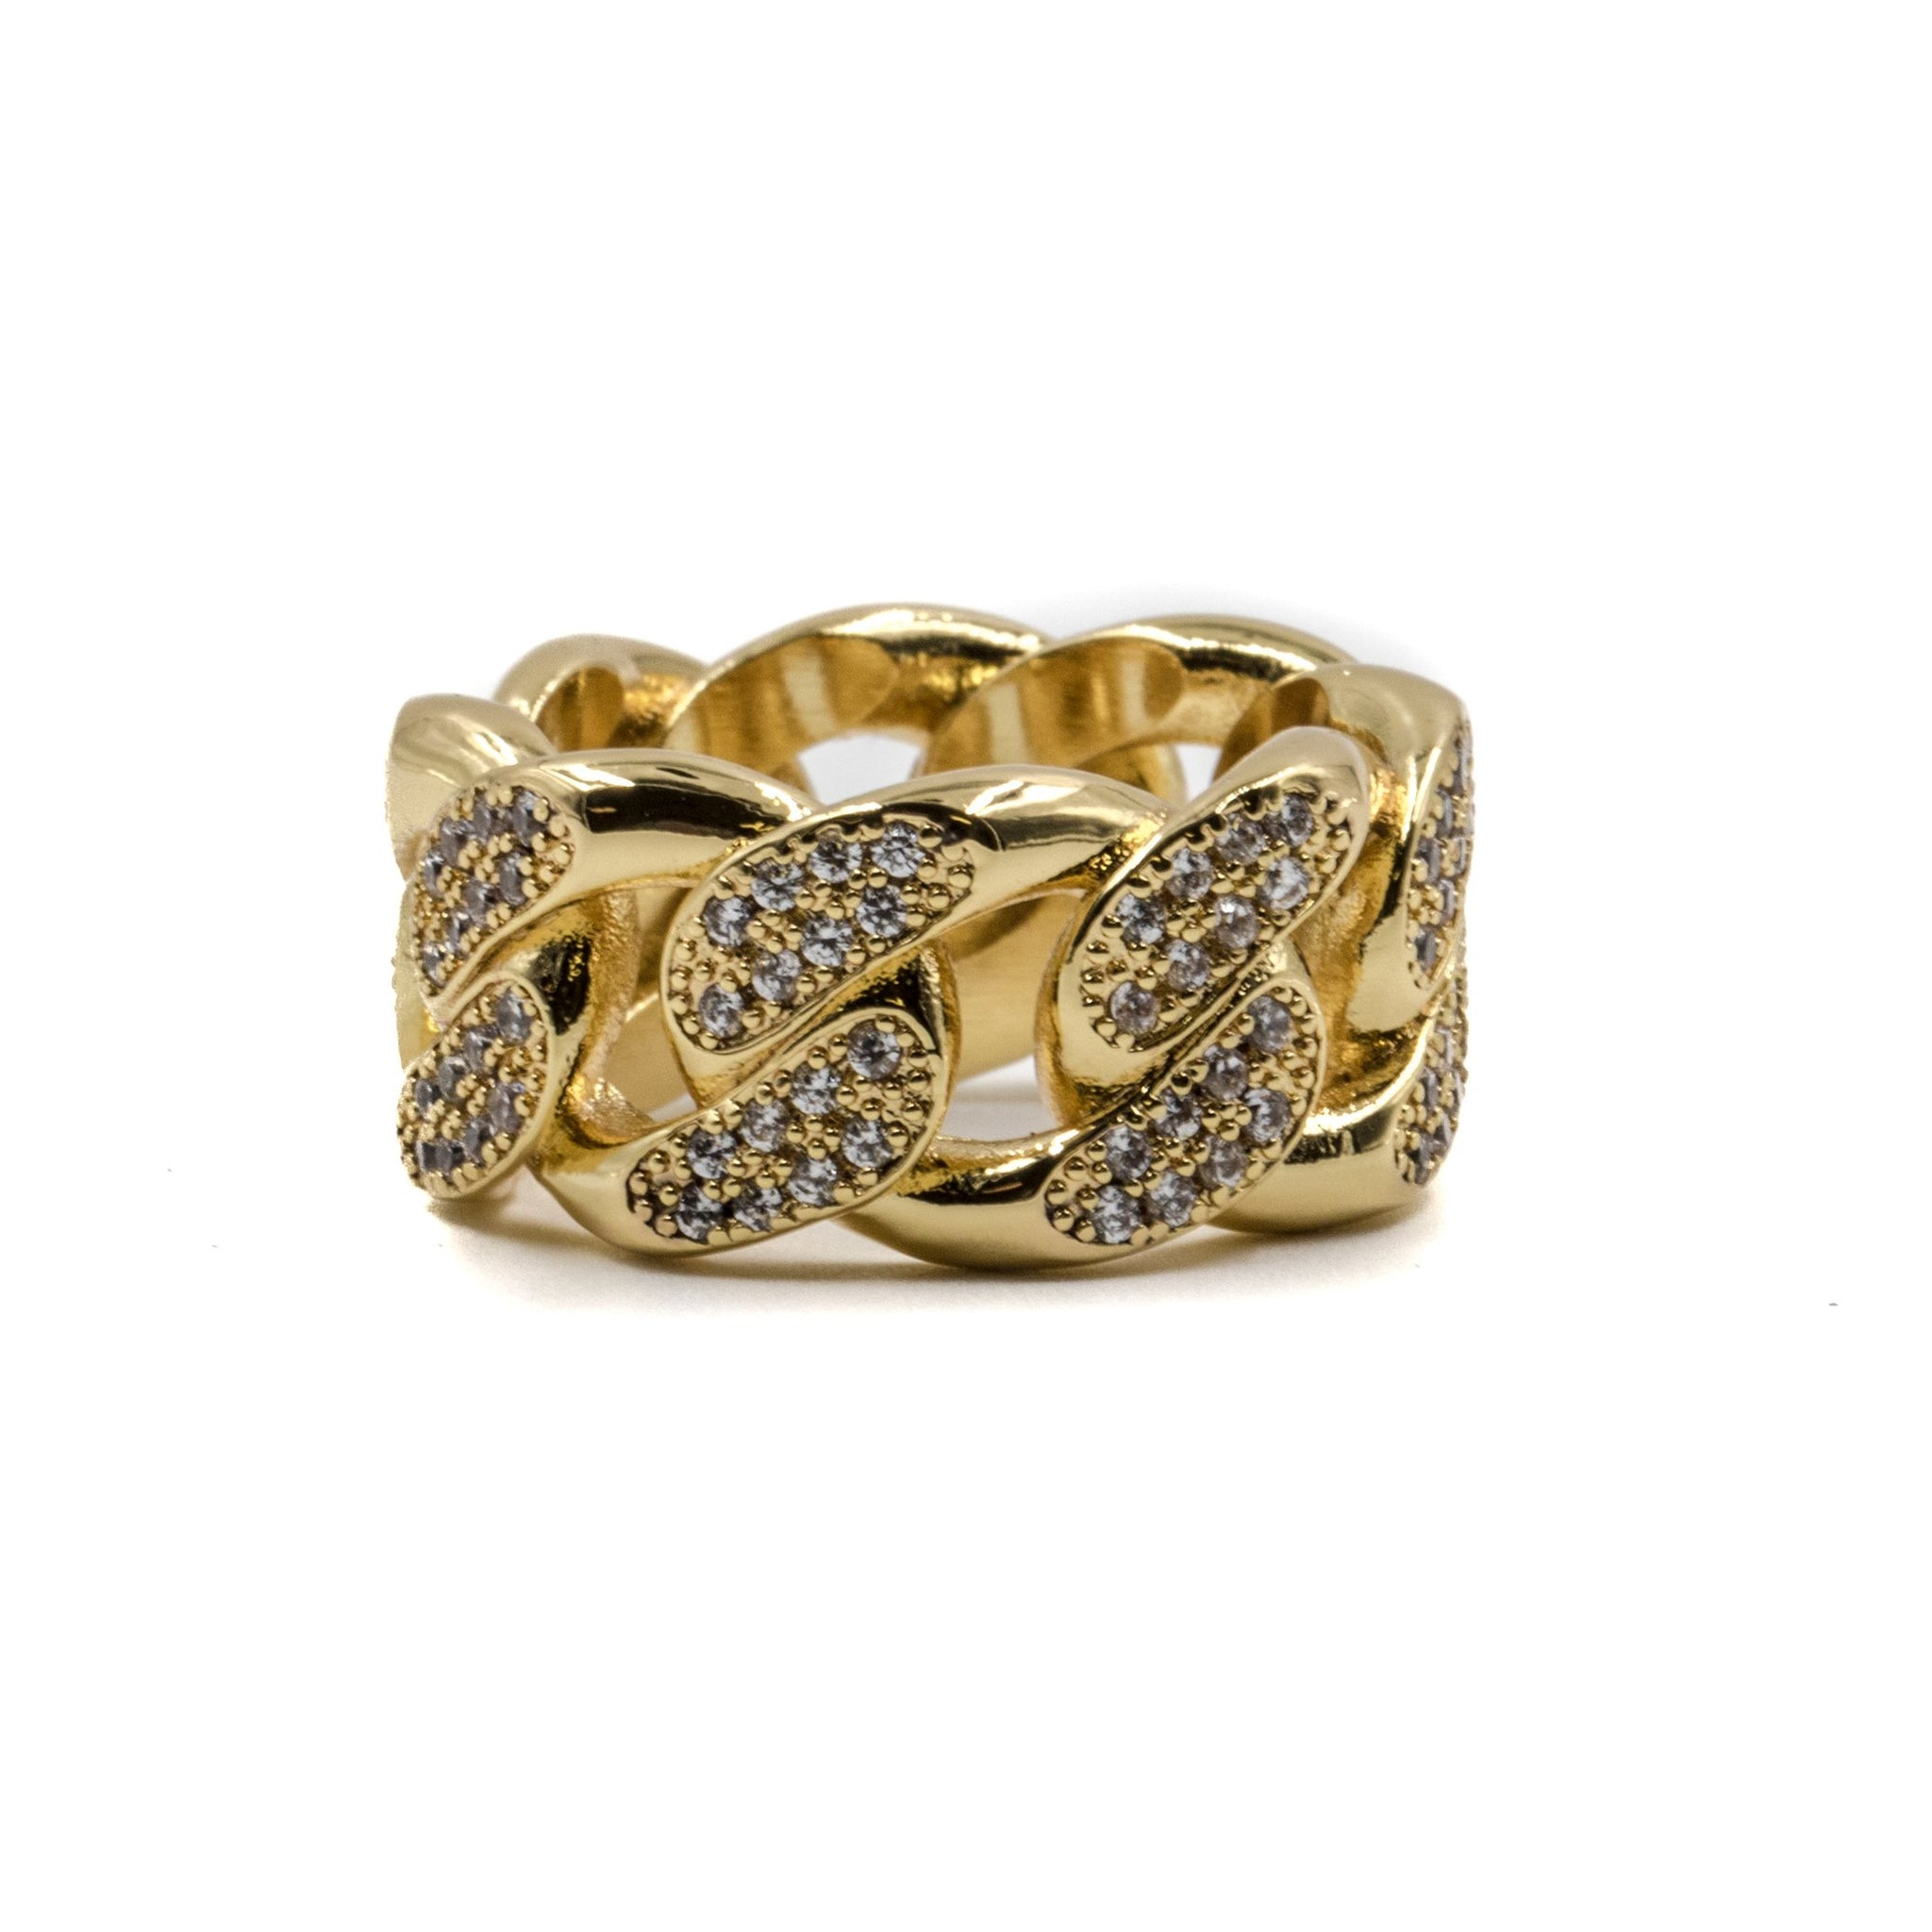 Studded Cuban Link Ring - 18K Gold Plated - GOLDENGILT